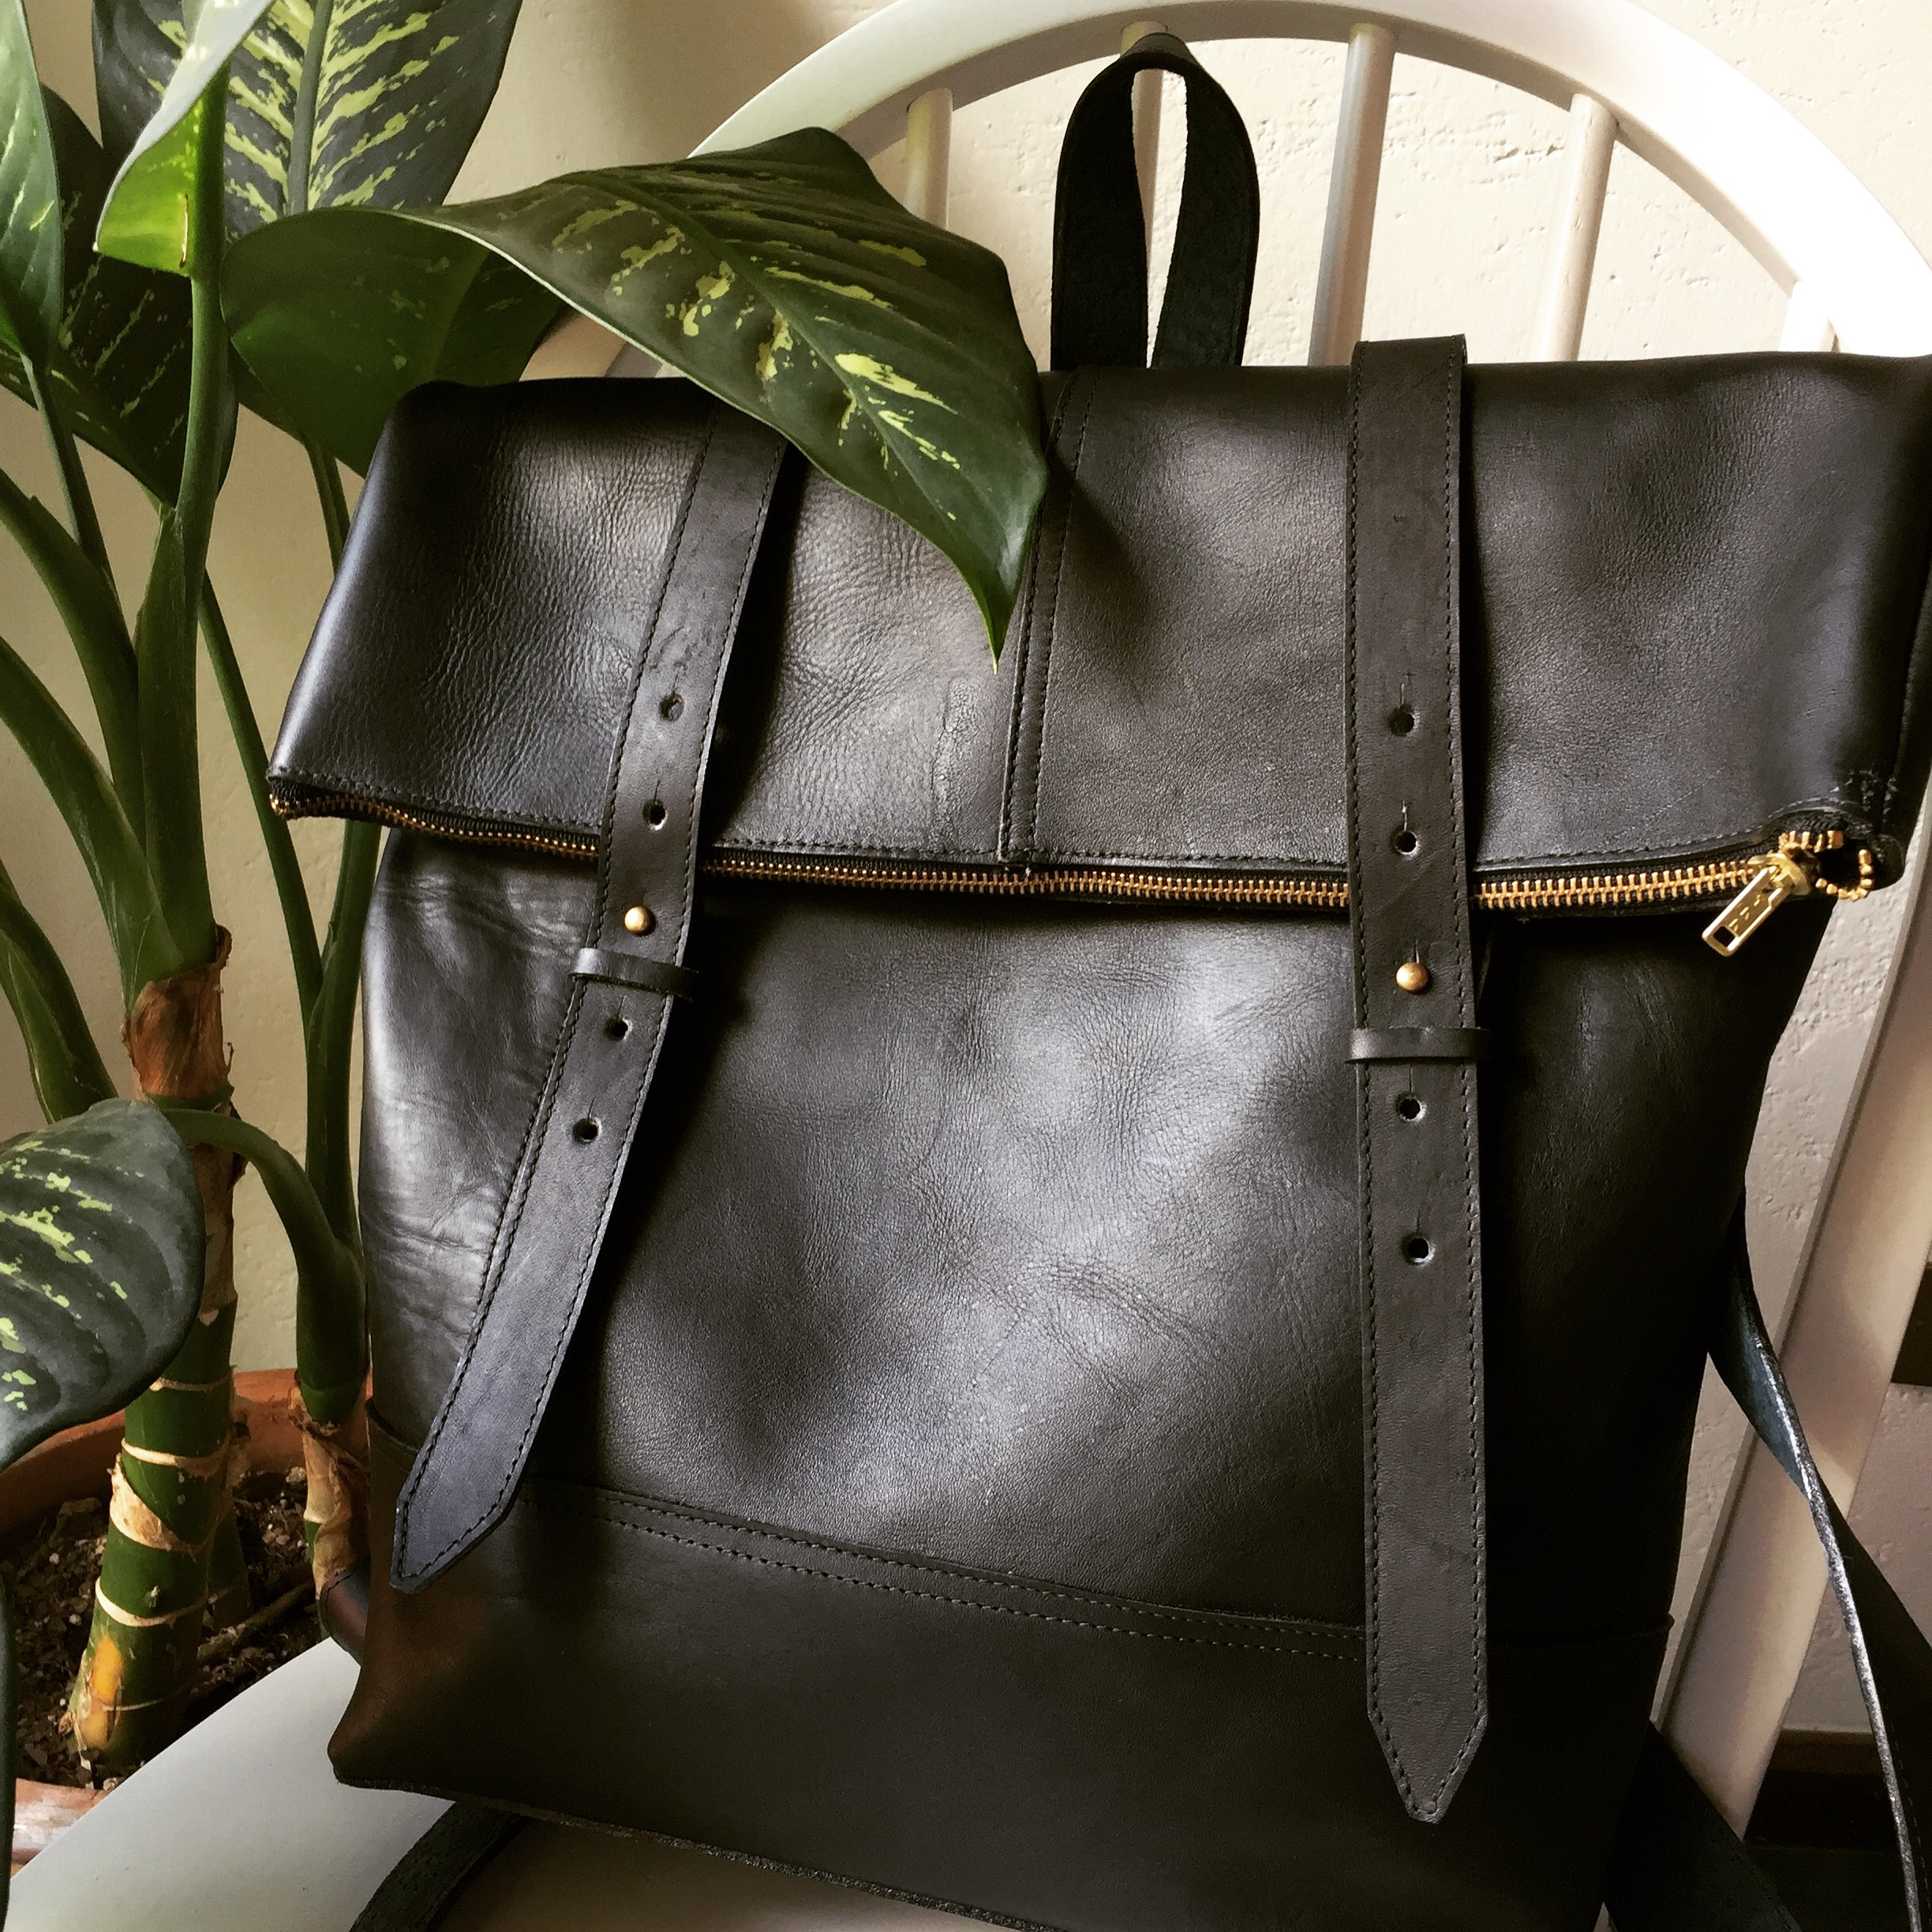 Black leather with blue leather detailing